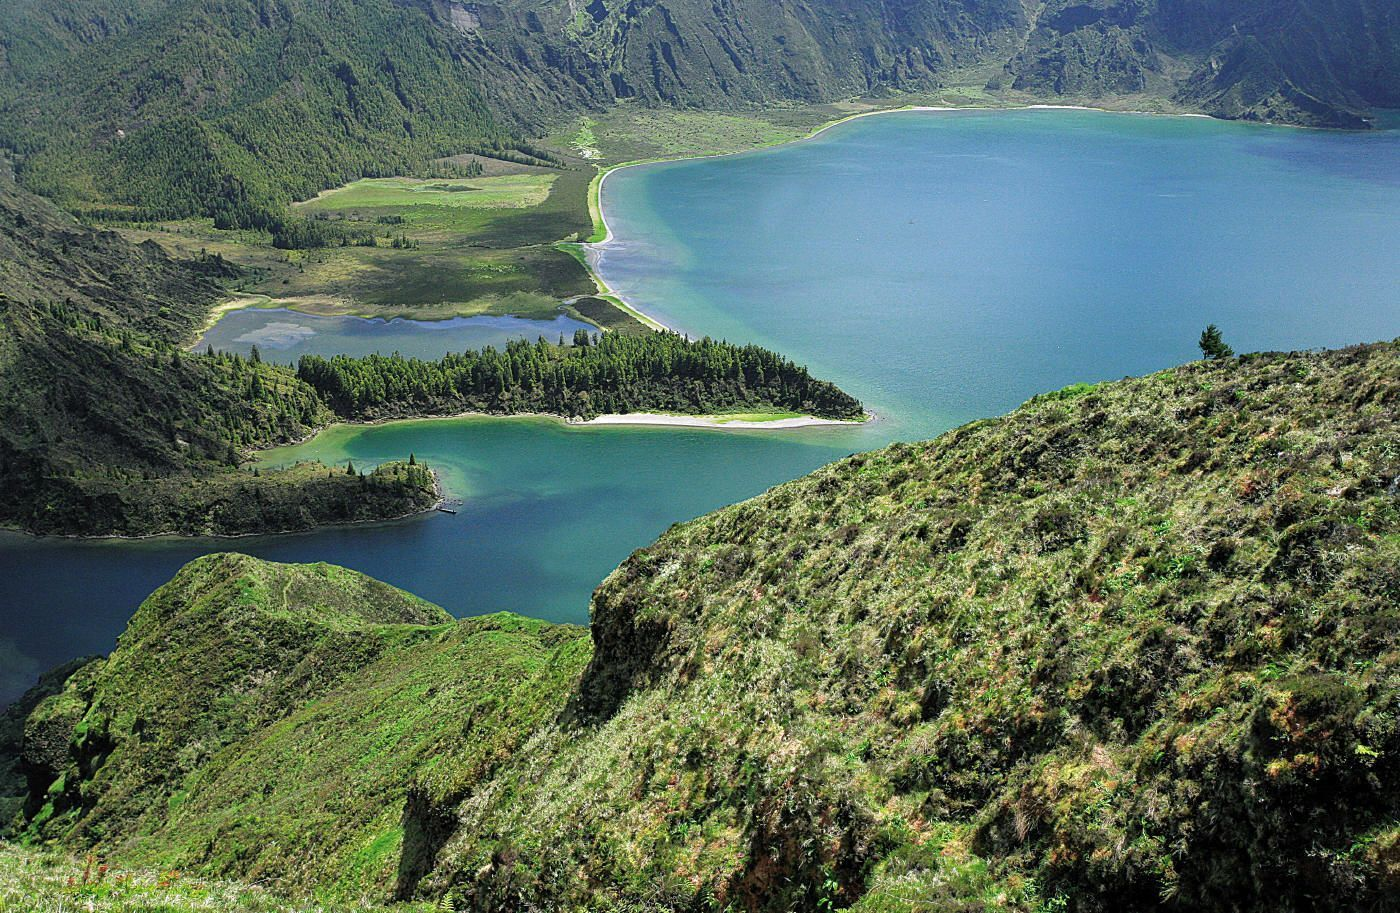 Lagoa do Fogo 03.jpg - The Azores - Lakes and Volcanoes - Self-Guided Road Cycling Holiday - Road Cycling